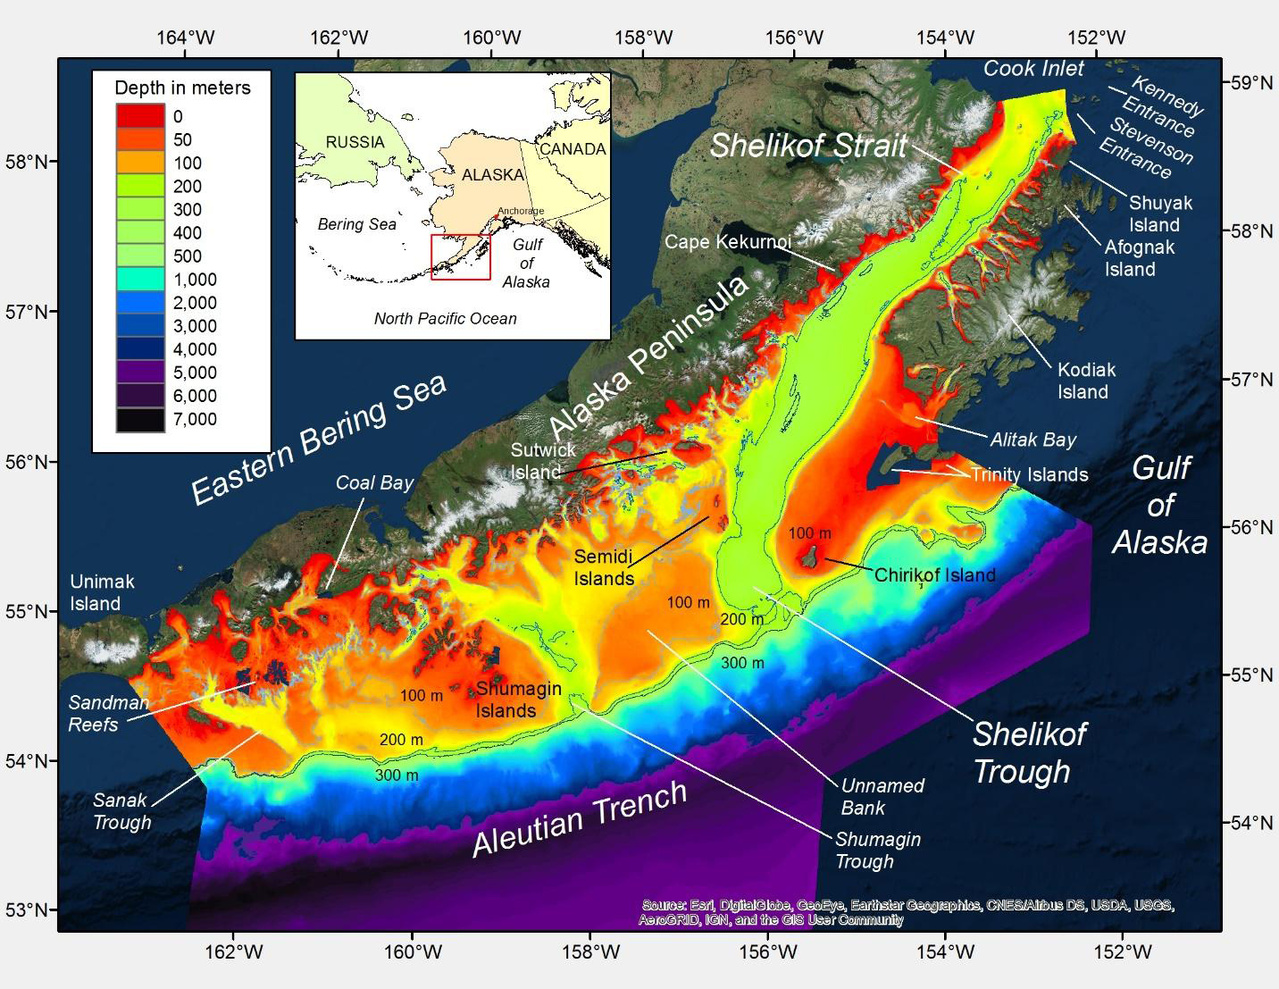 New bathymetric map of the western Gulf of Alaska.